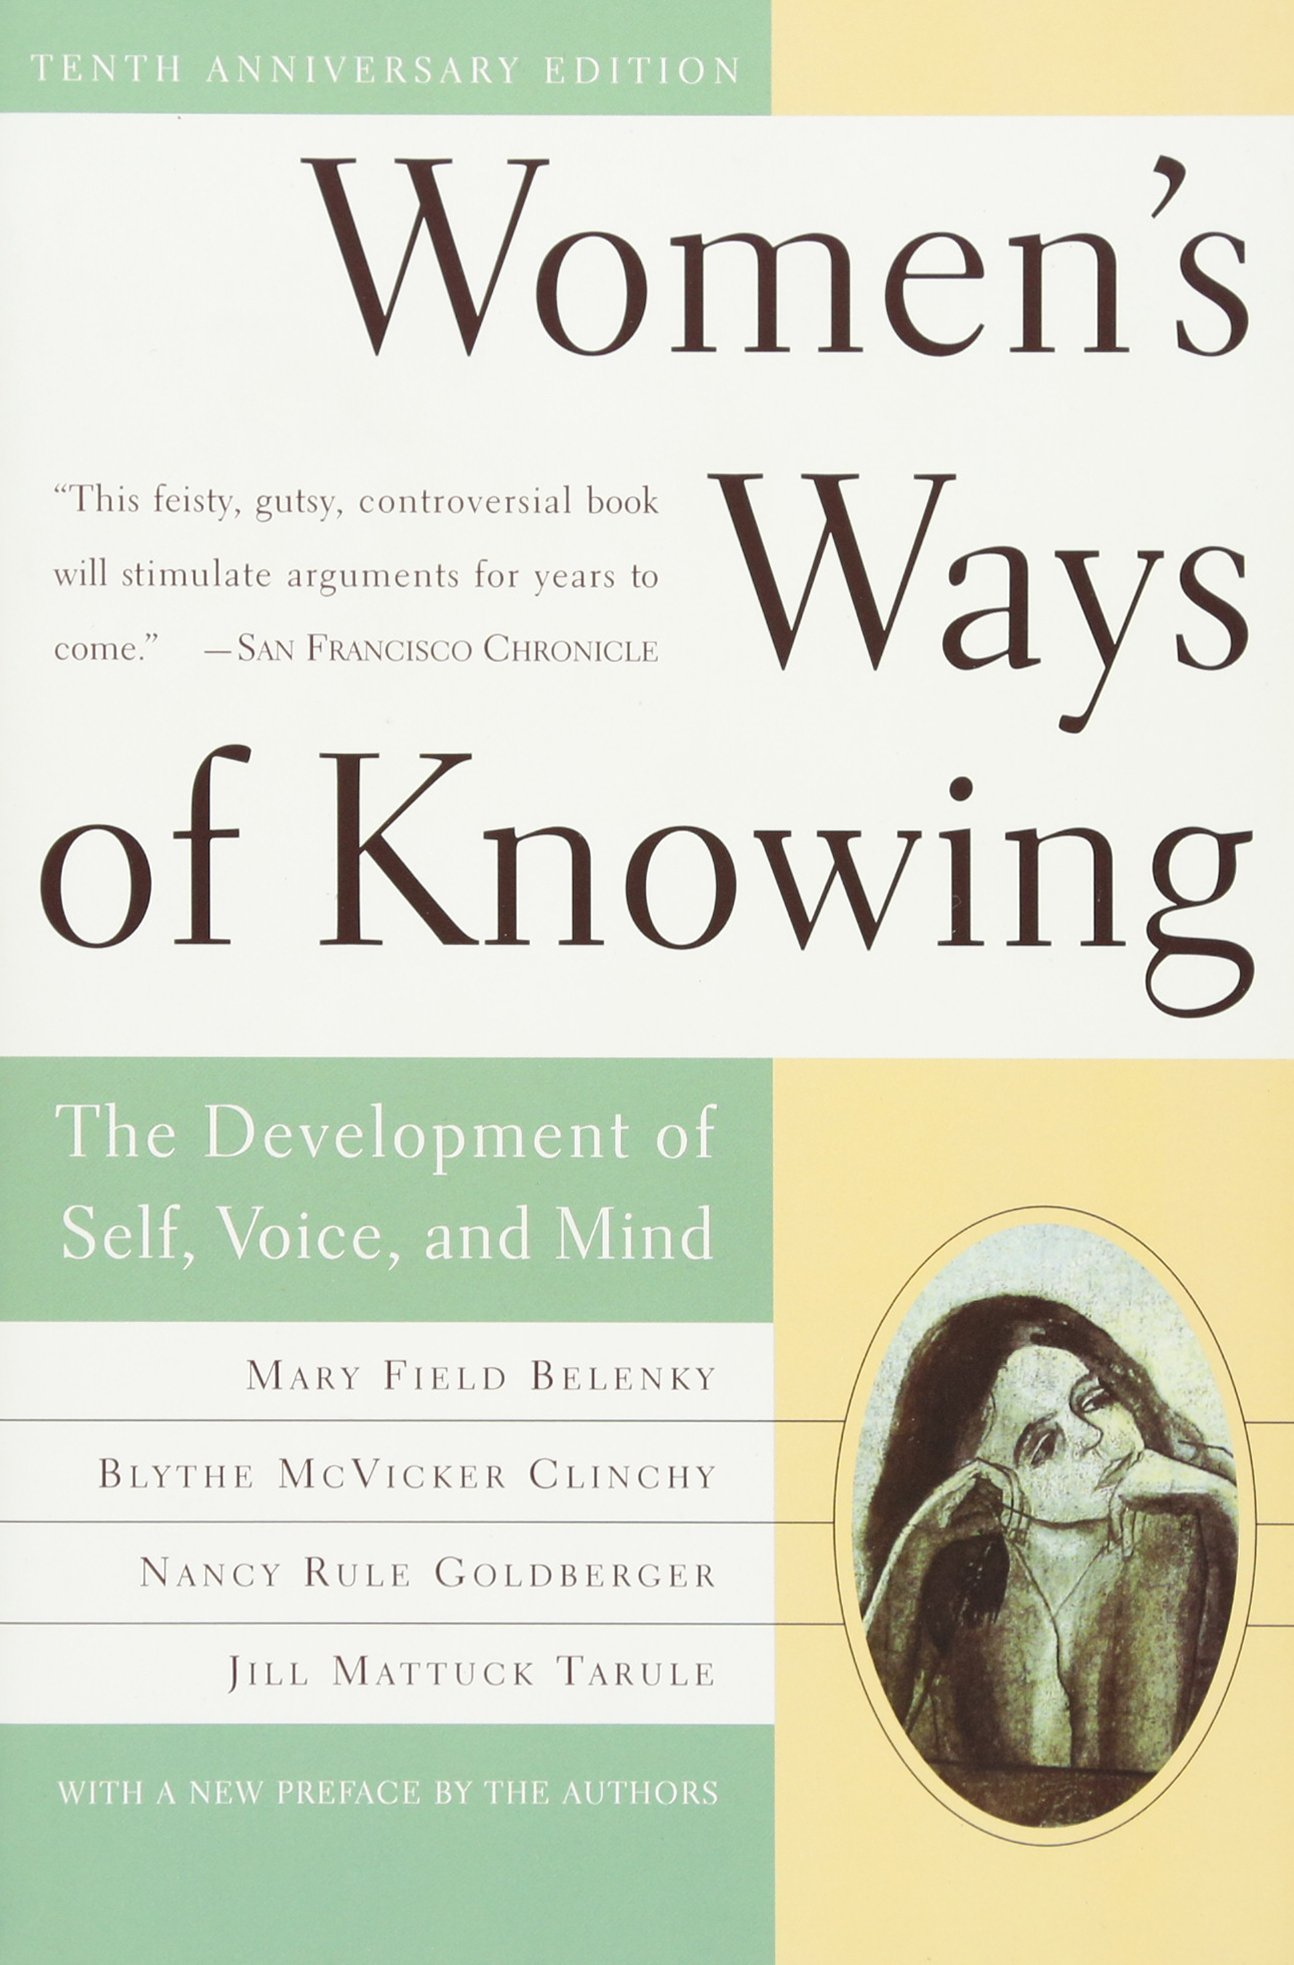 Image result for Women's Ways Of Knowing: The Development Of Self, Voice, And Mind by Mary Belenky